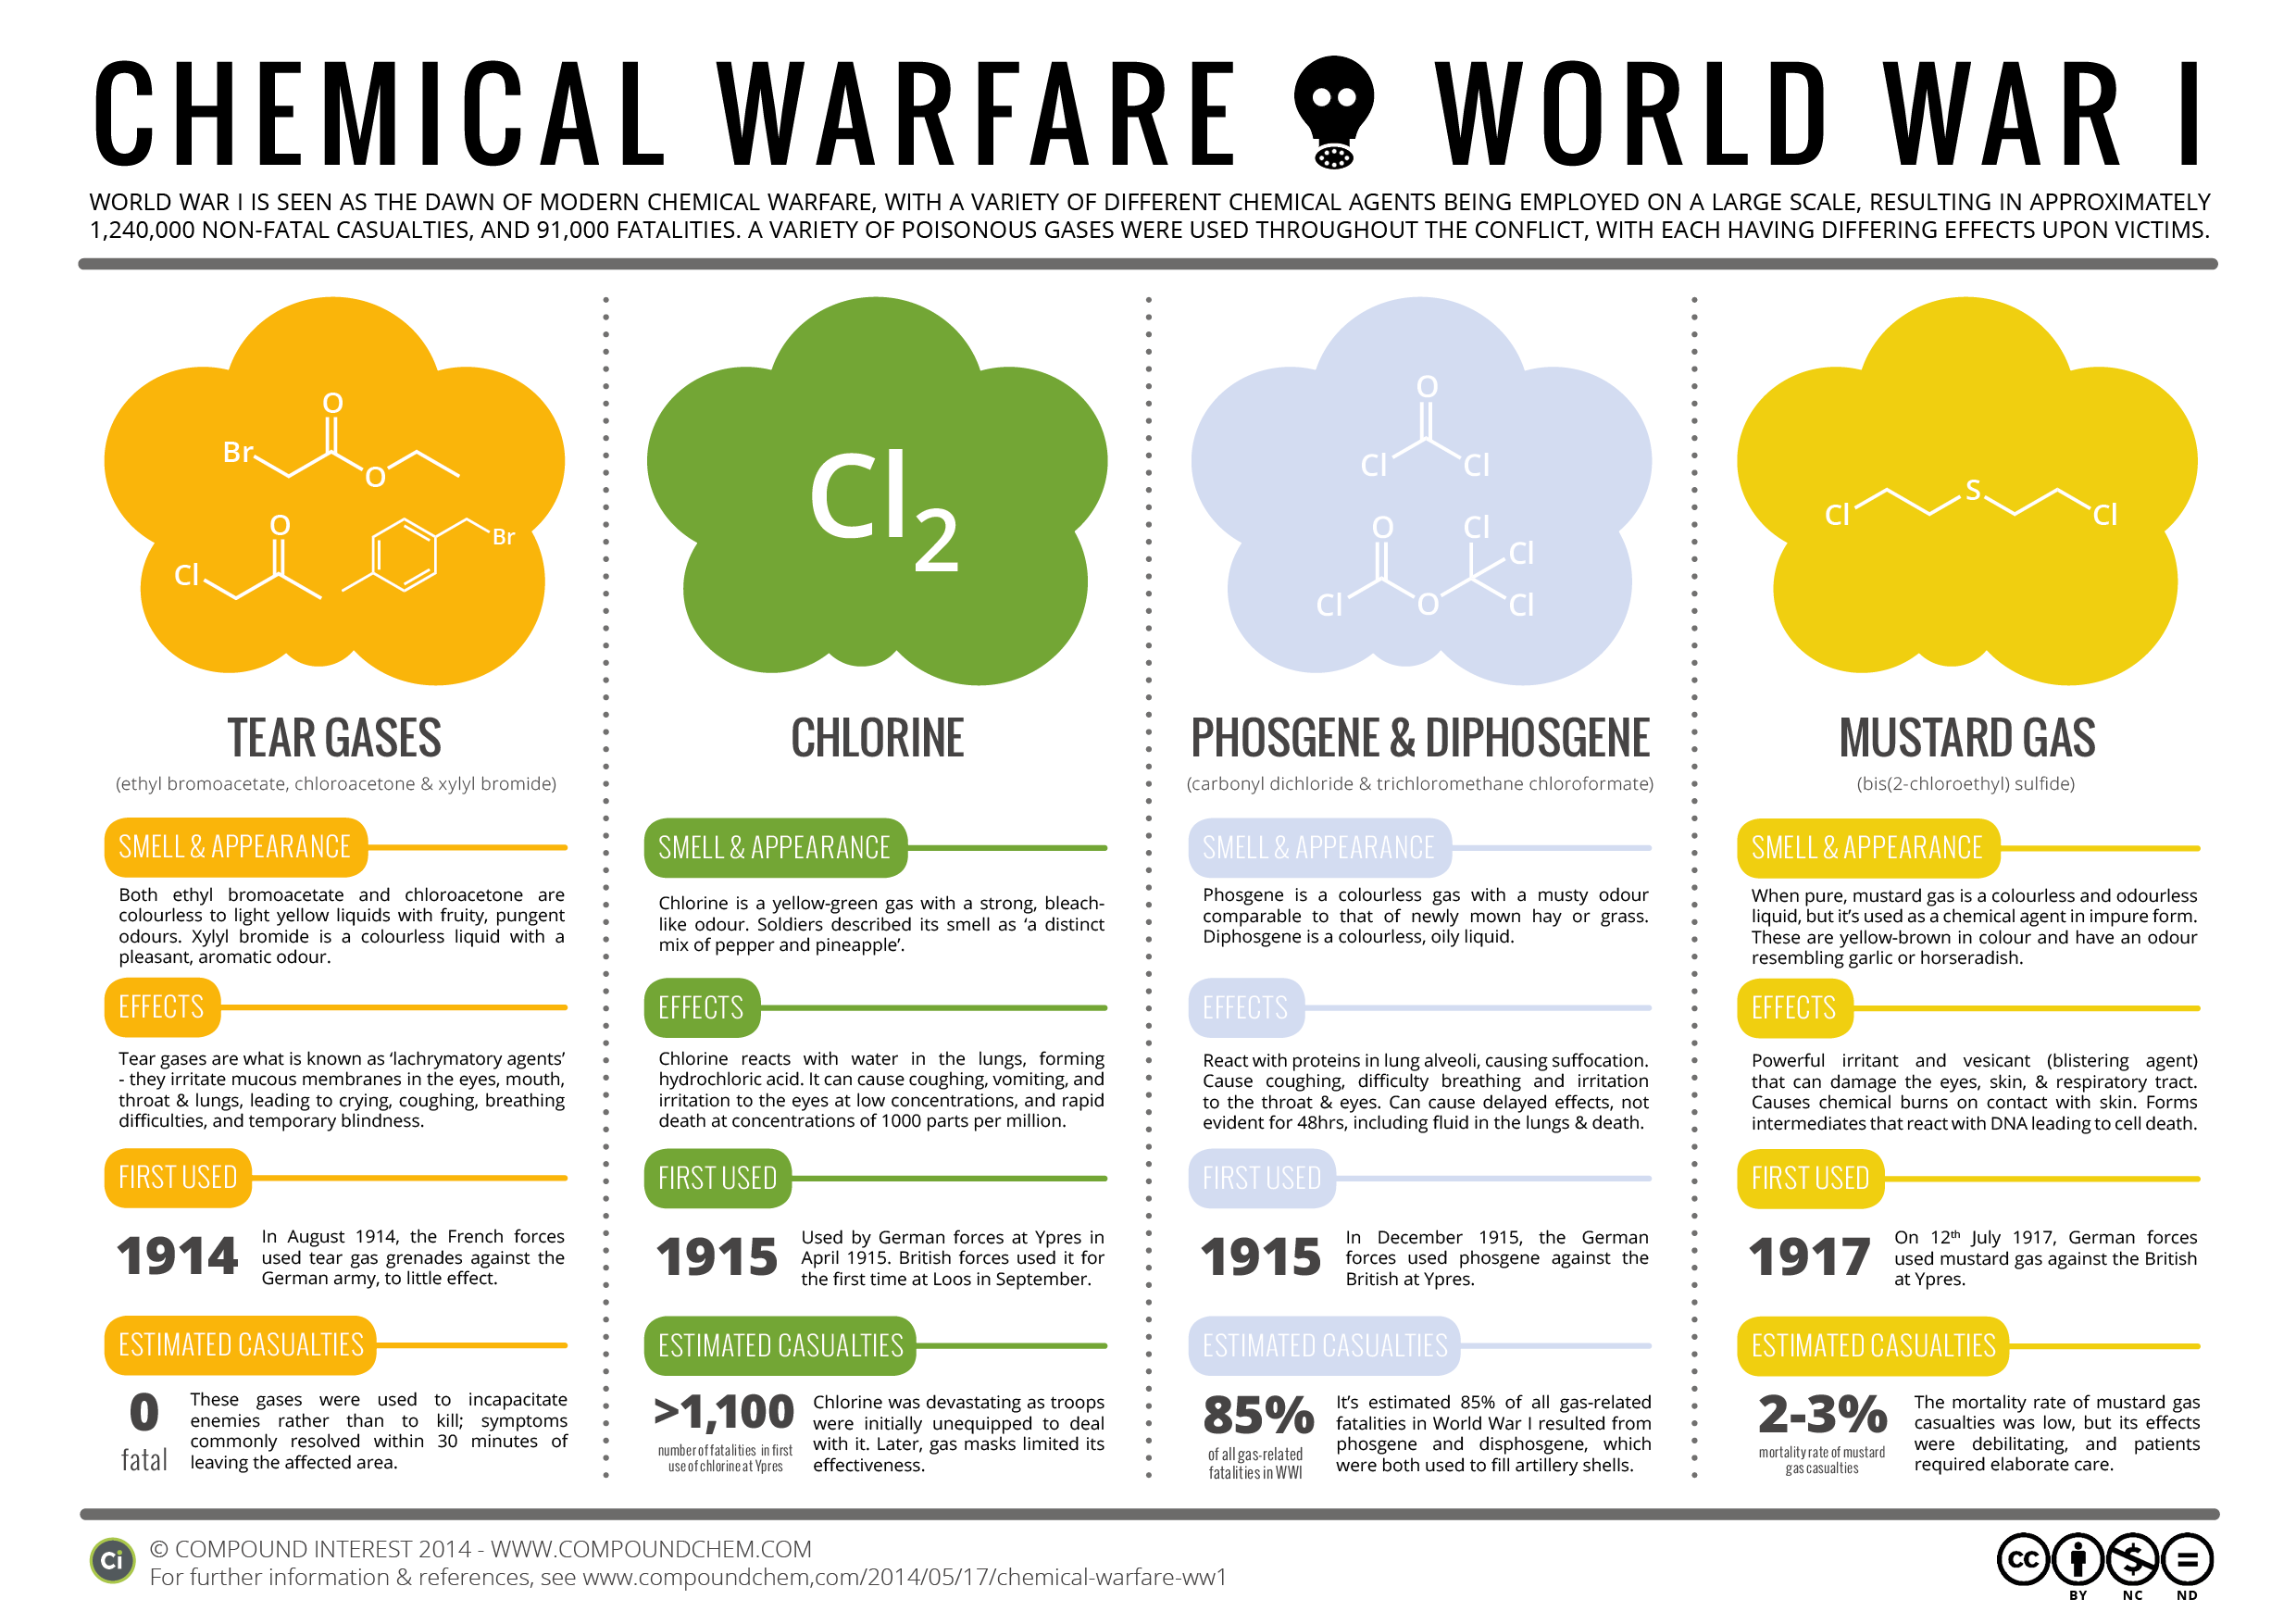 Compound interest chemical warfare poison gases in world war 1 chemical warfare world war 1 poison gases gamestrikefo Images